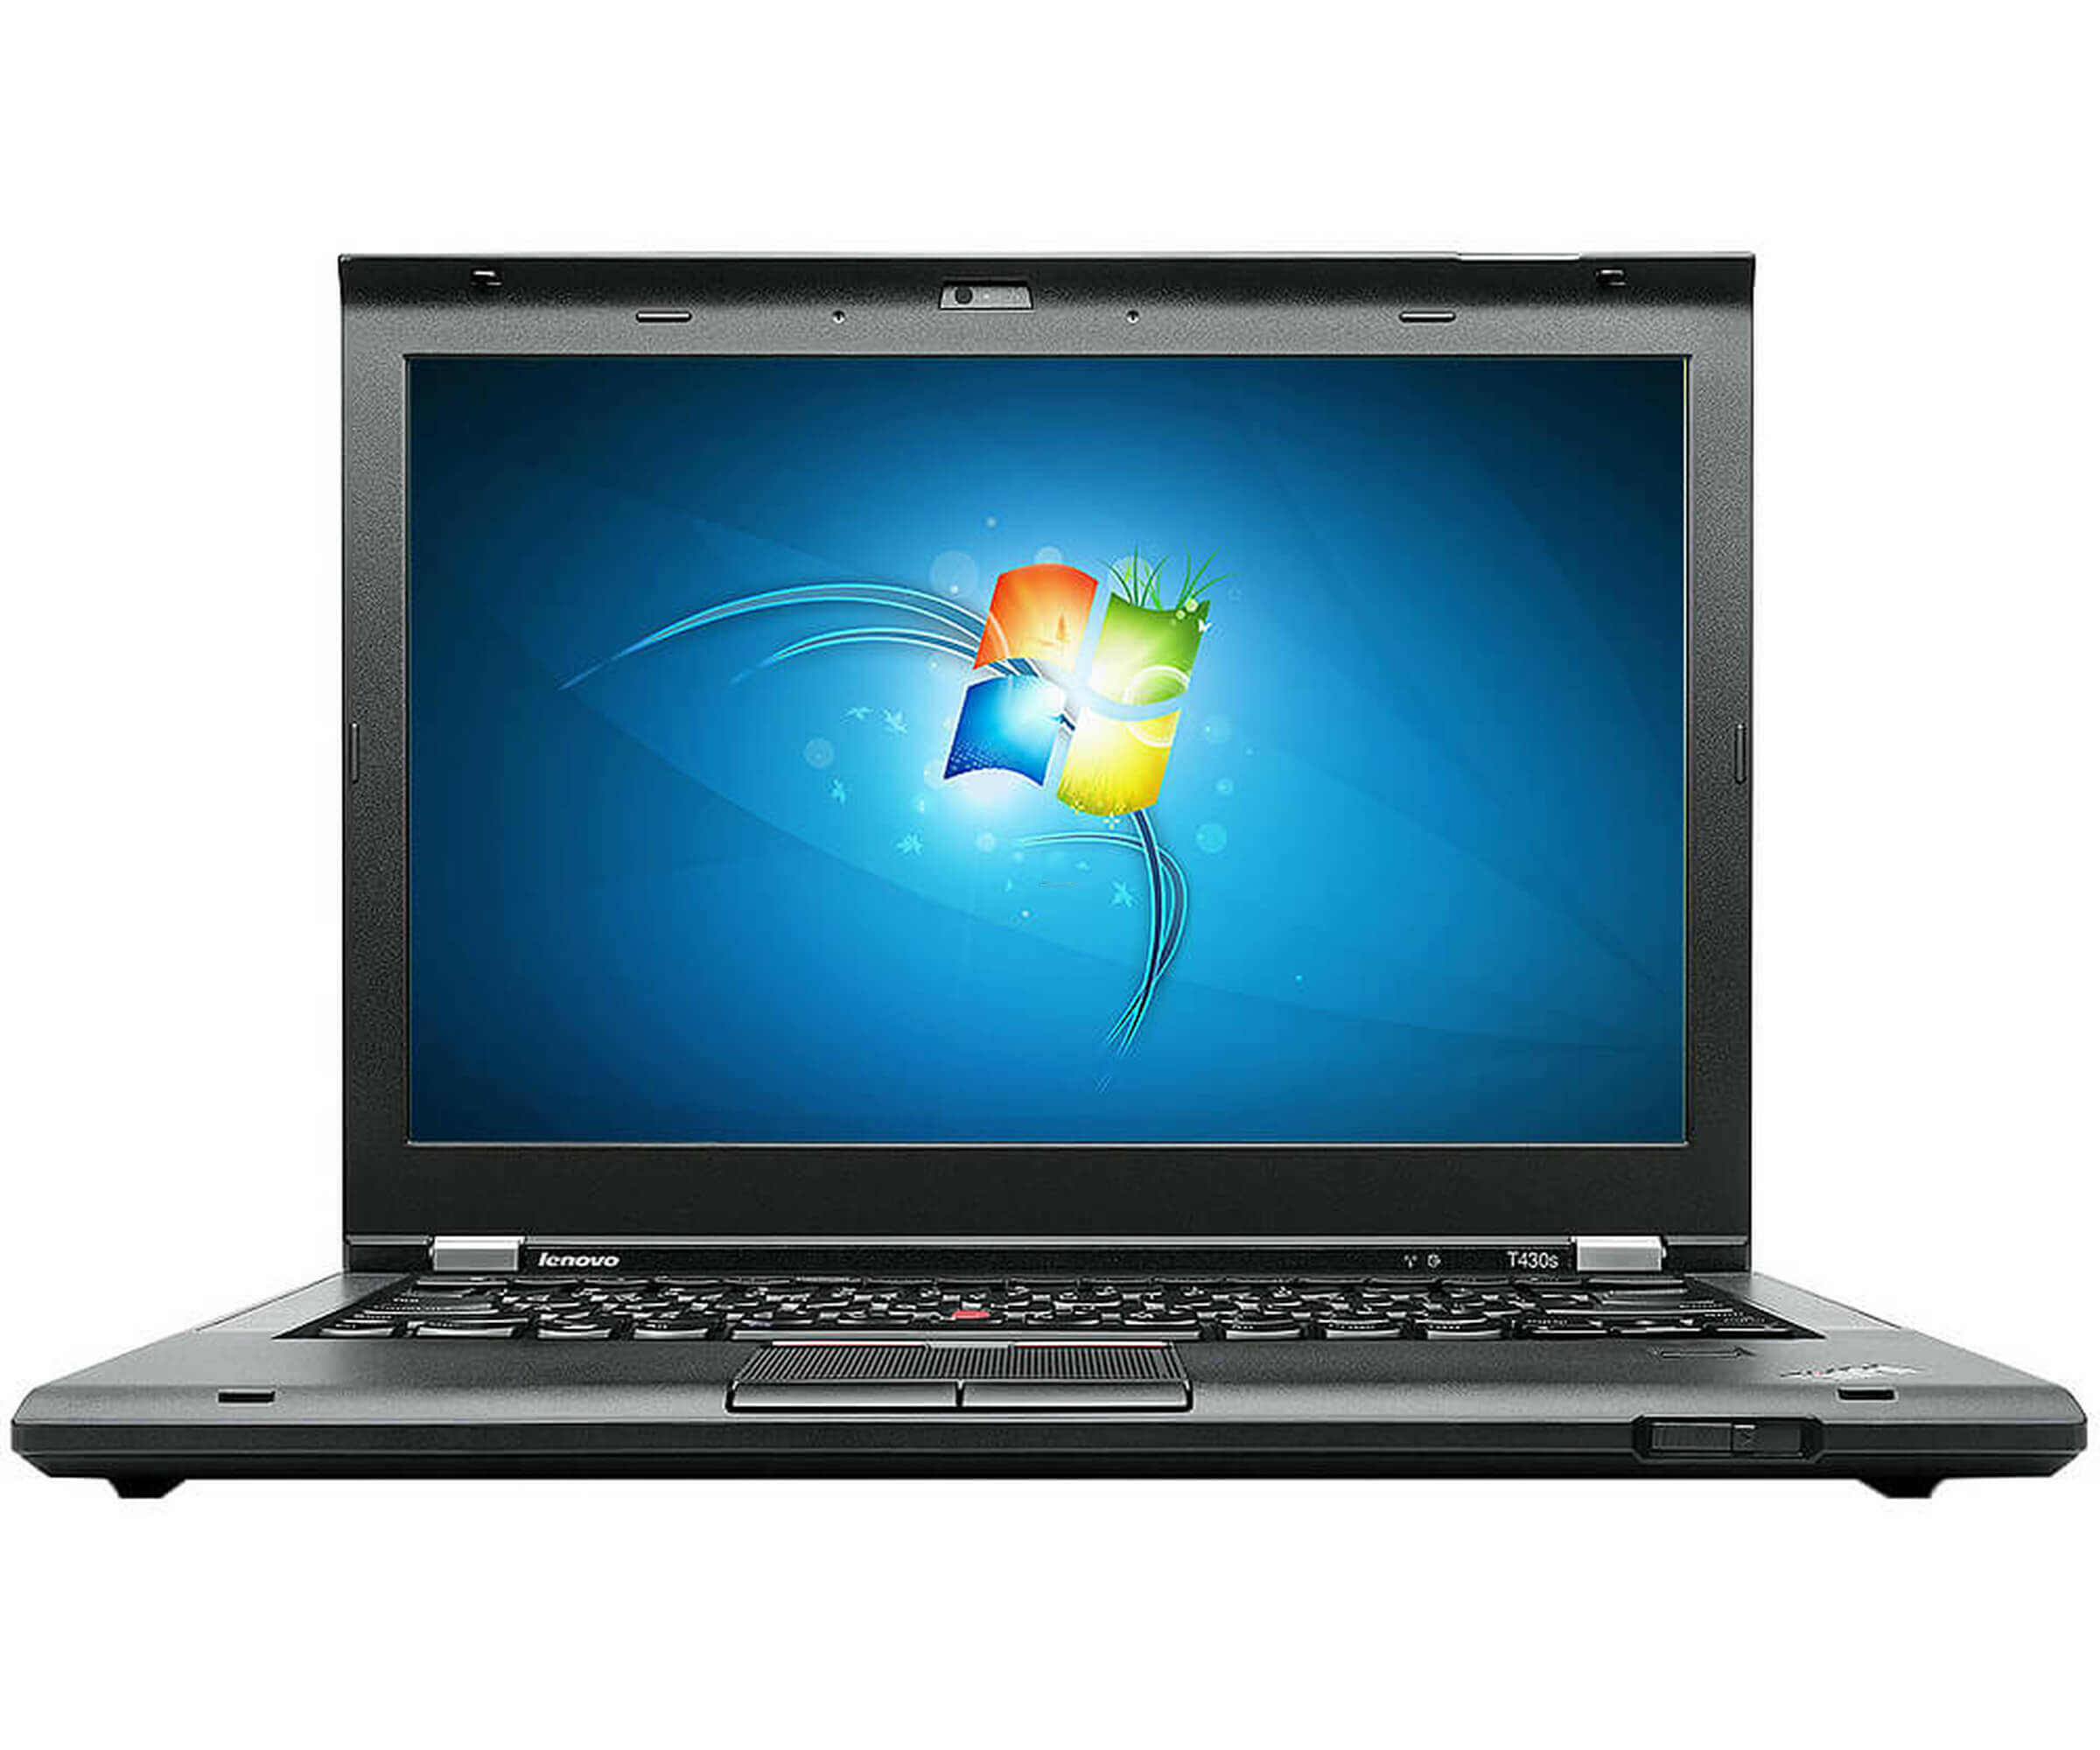 Lenovo ThinkPad T430s - 2356AA9 - Core i5-3320M / 2.60 GHz - 8 GB RAM - 250 GB HDD - 14.0 TFT -  W7